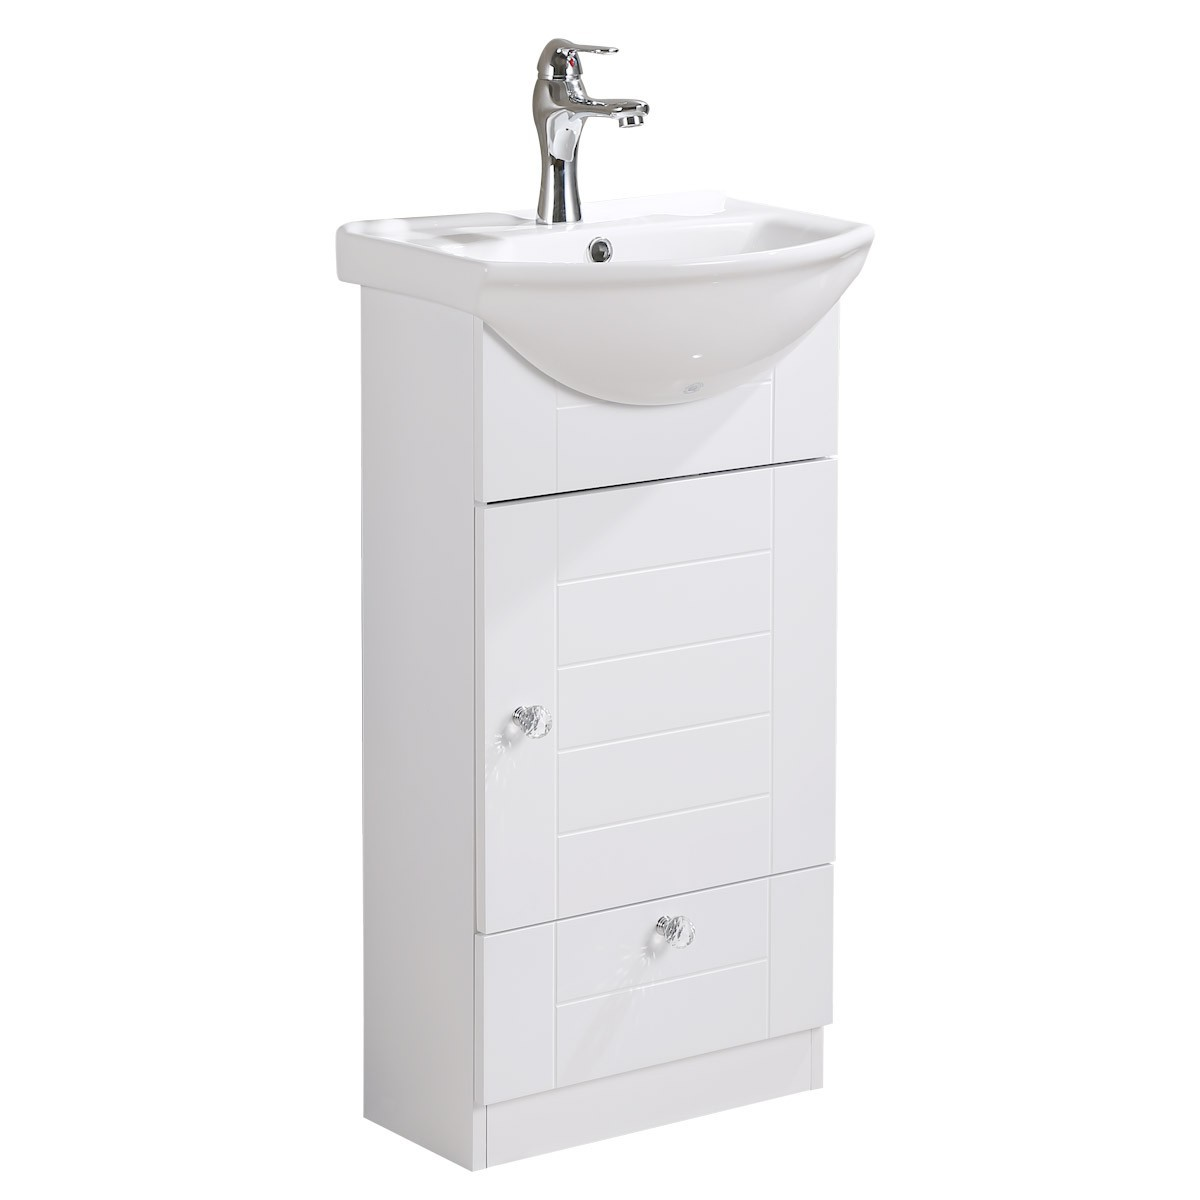 white wall mounted bathroom cabinets small cabinet vanity wall mount white ebay 24698 | 21951